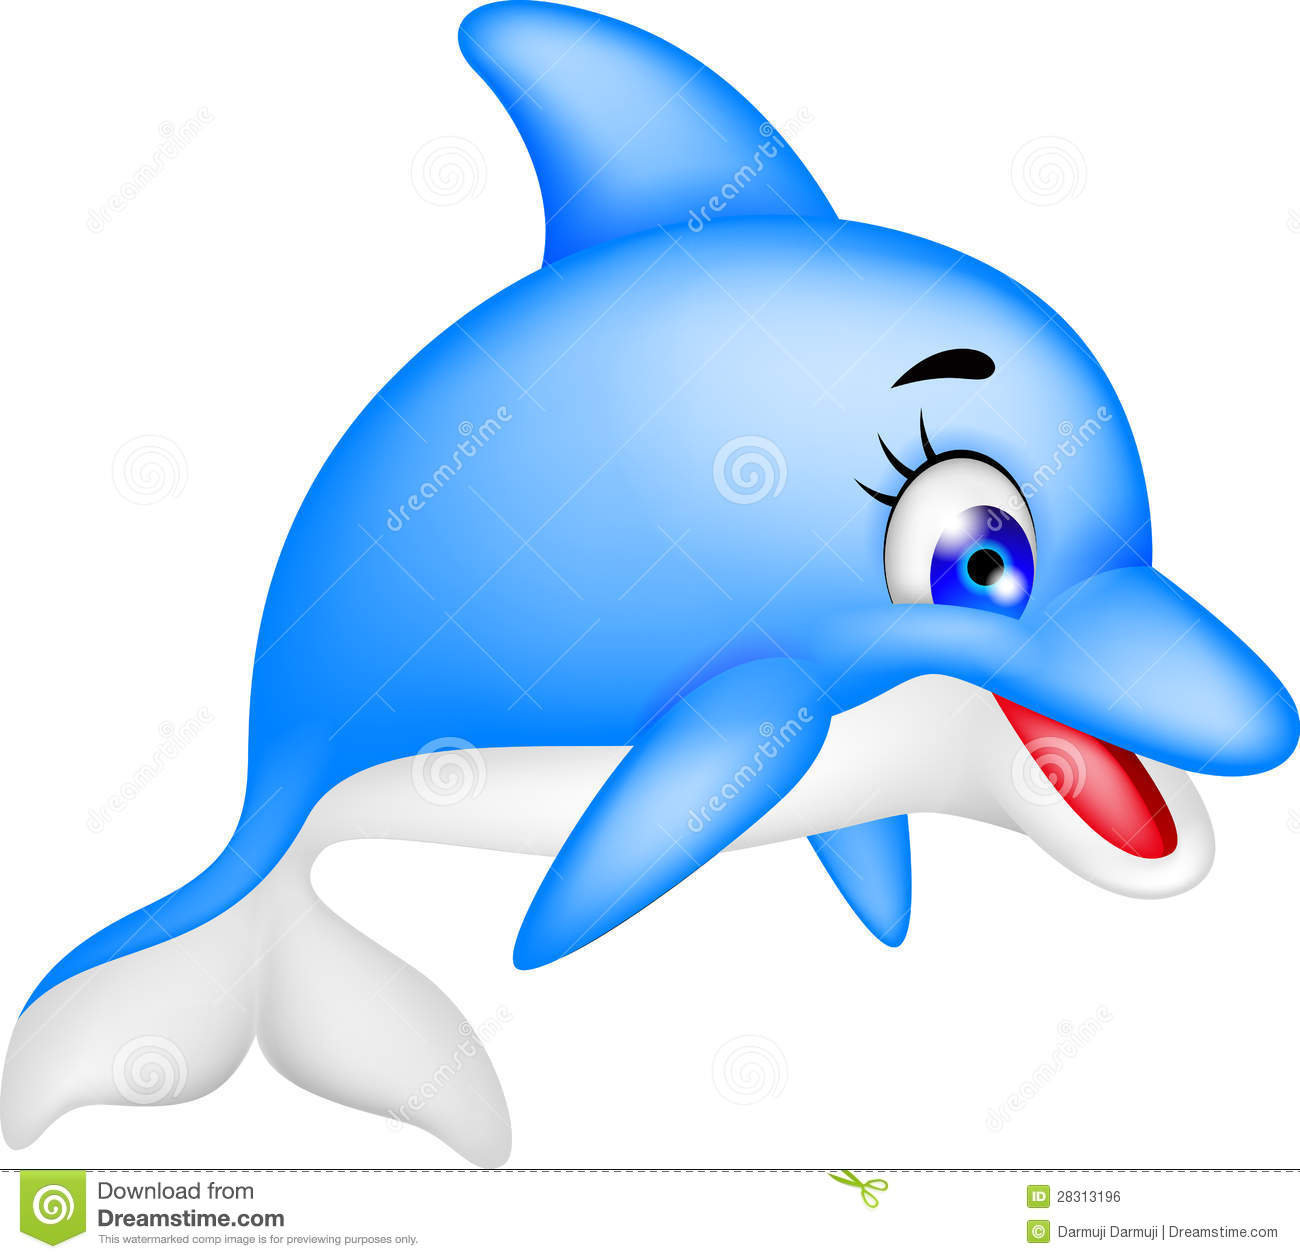 Funny Dolphin Cartoon Royalty Free Stock Image - Image: 28313196